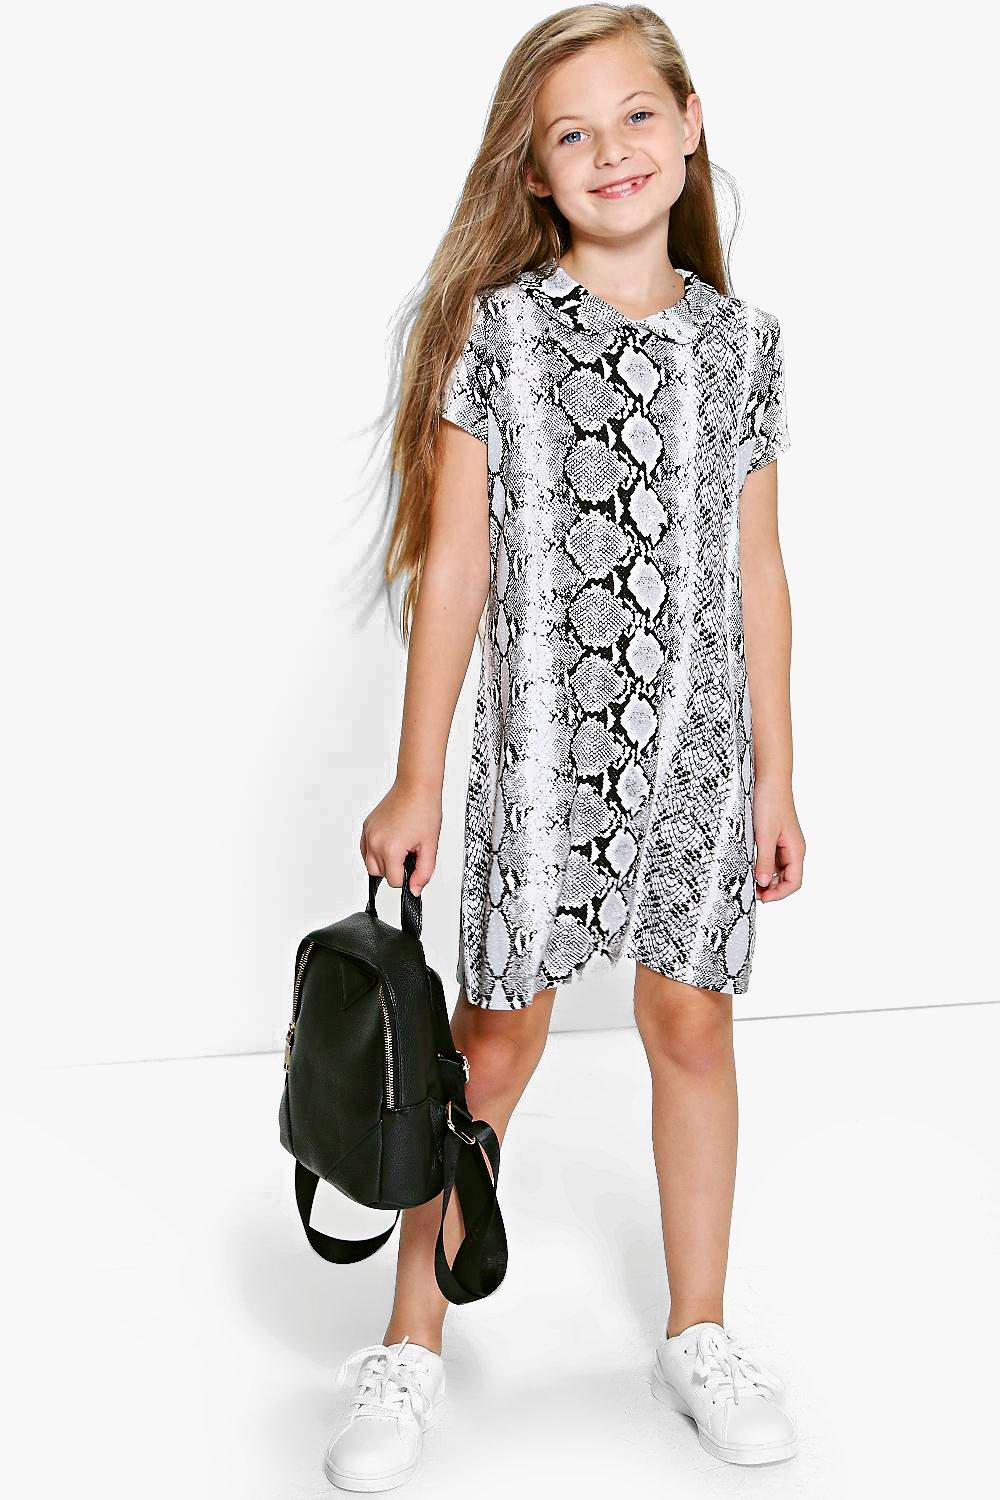 91c1fefa8 Girls Metallic Snake Print Shift Dress